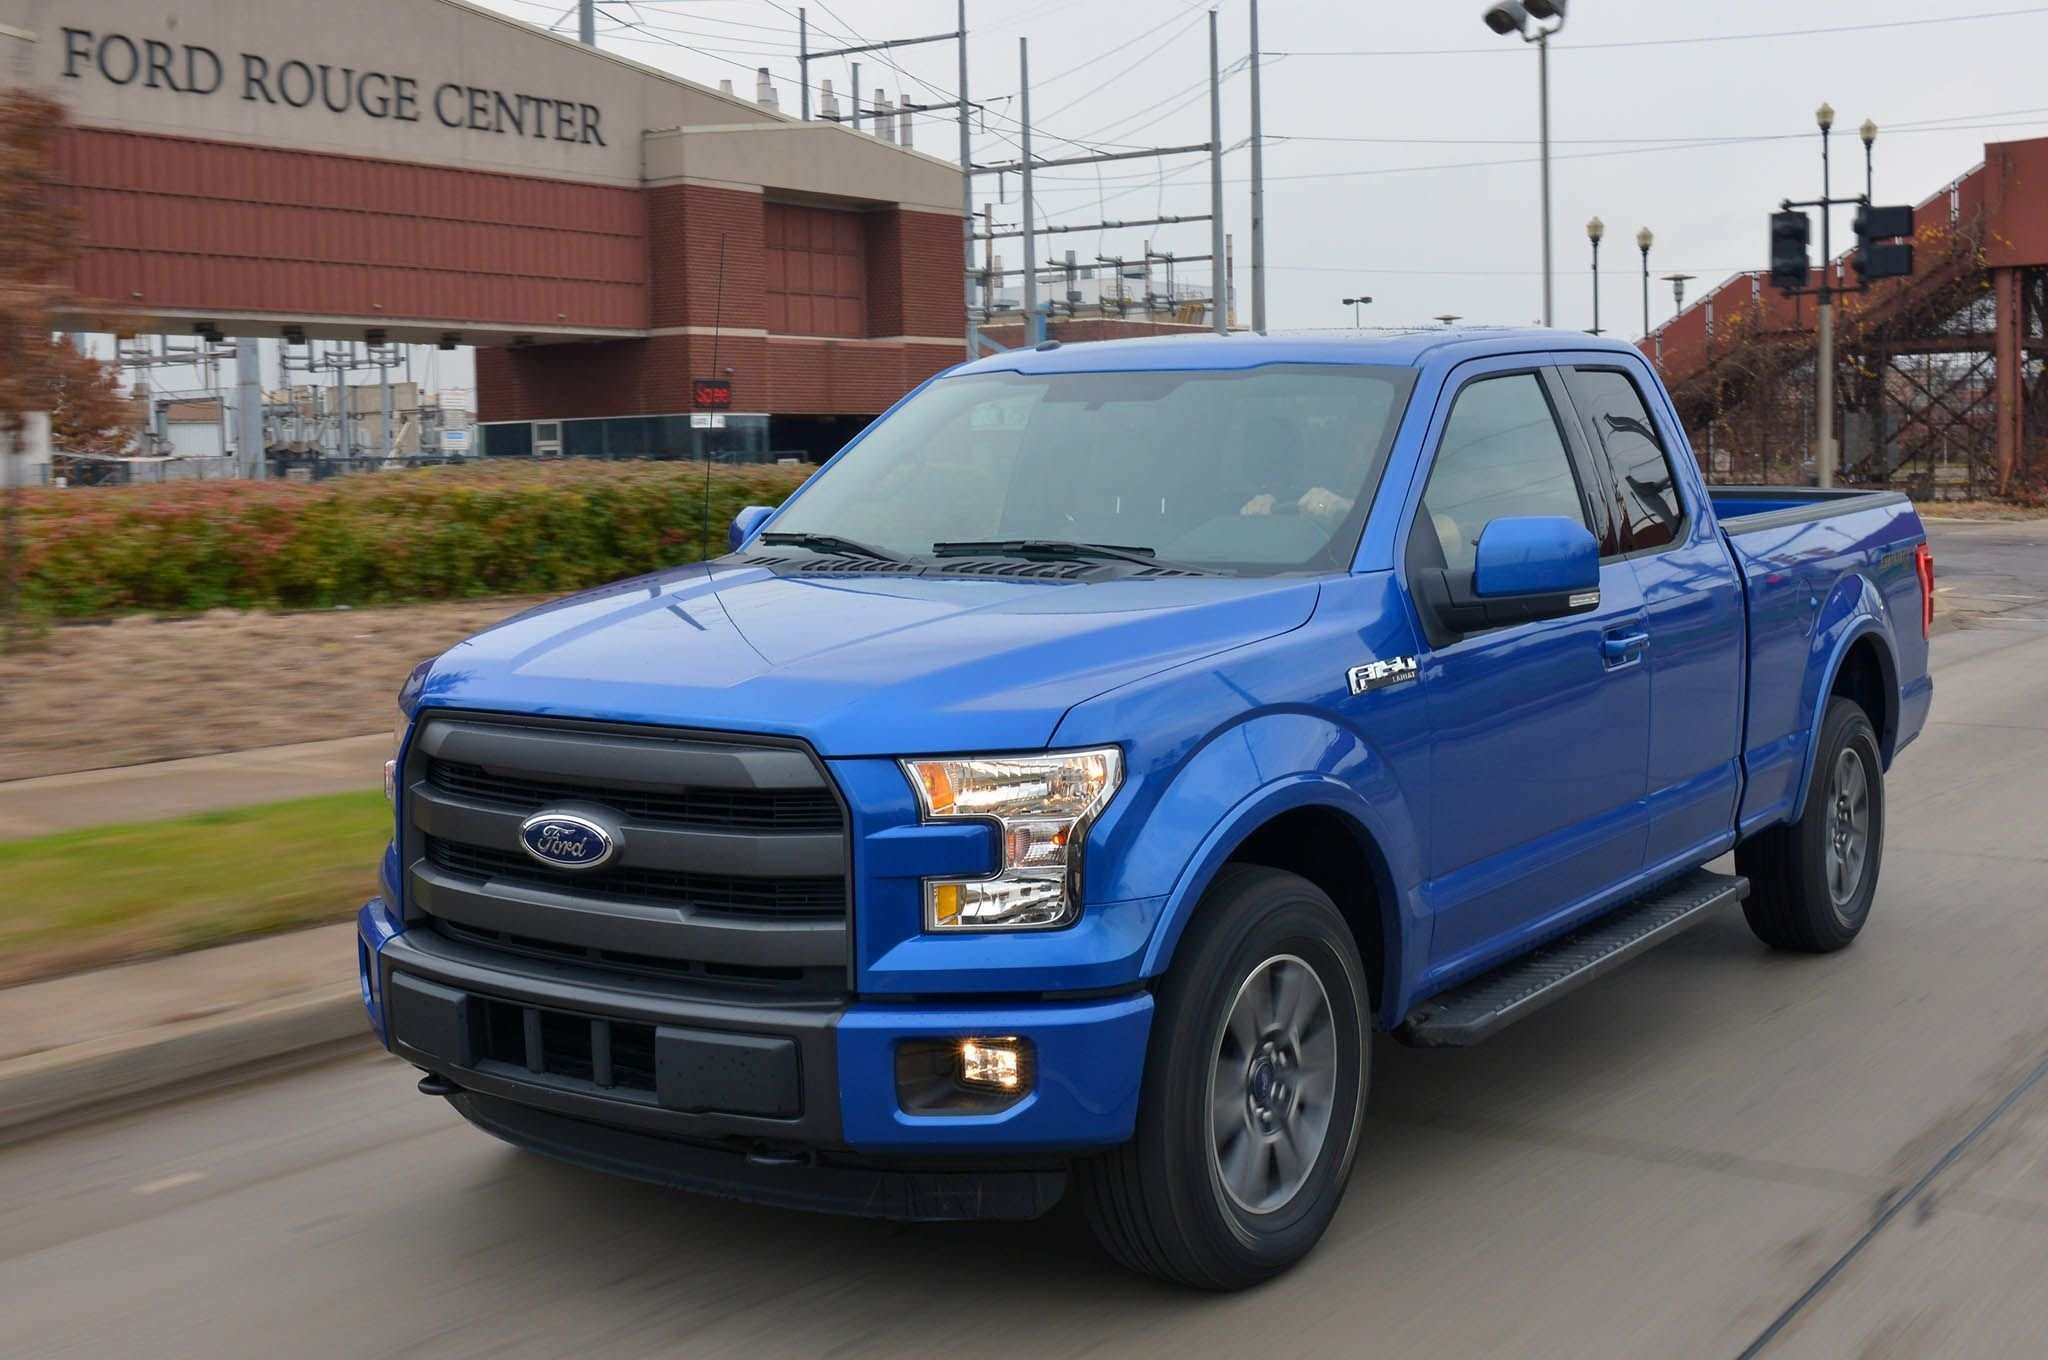 79 Great Ford Lobo 2020 Prices with Ford Lobo 2020